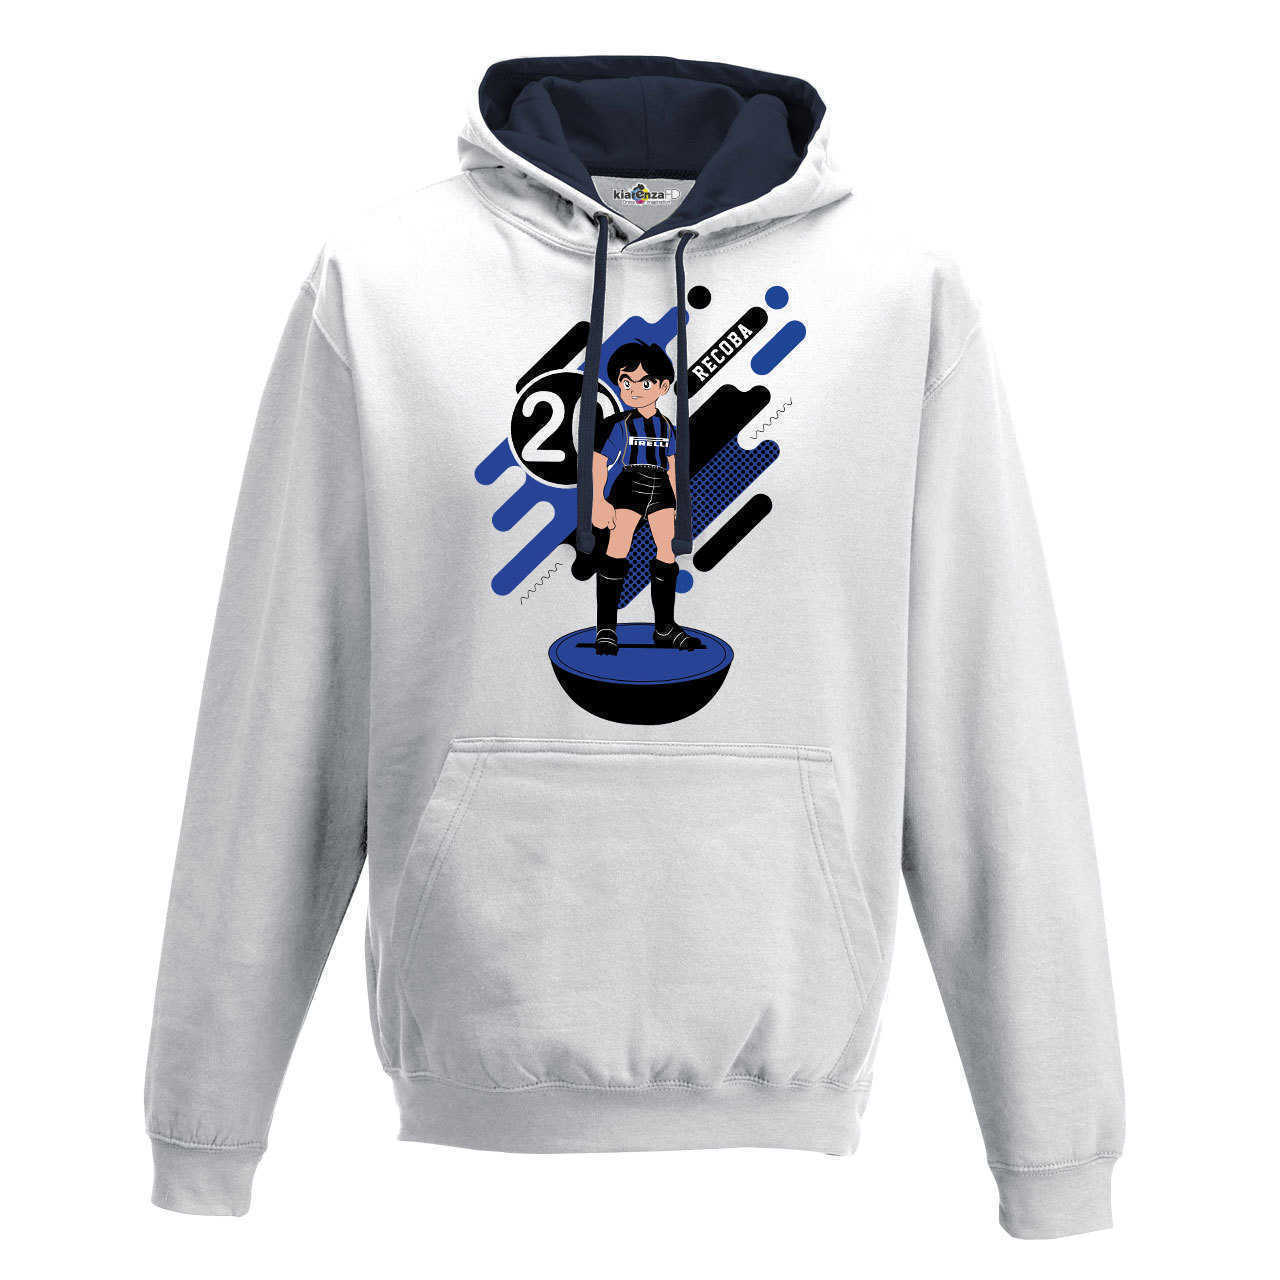 Hood Sweatshirt Bico <font><b>Soccer</b></font> Manga Recoba <font><b>Inter</b></font> <font><b>Milan</b></font> Legend Spoof Subbuteo Holly and Benji S image